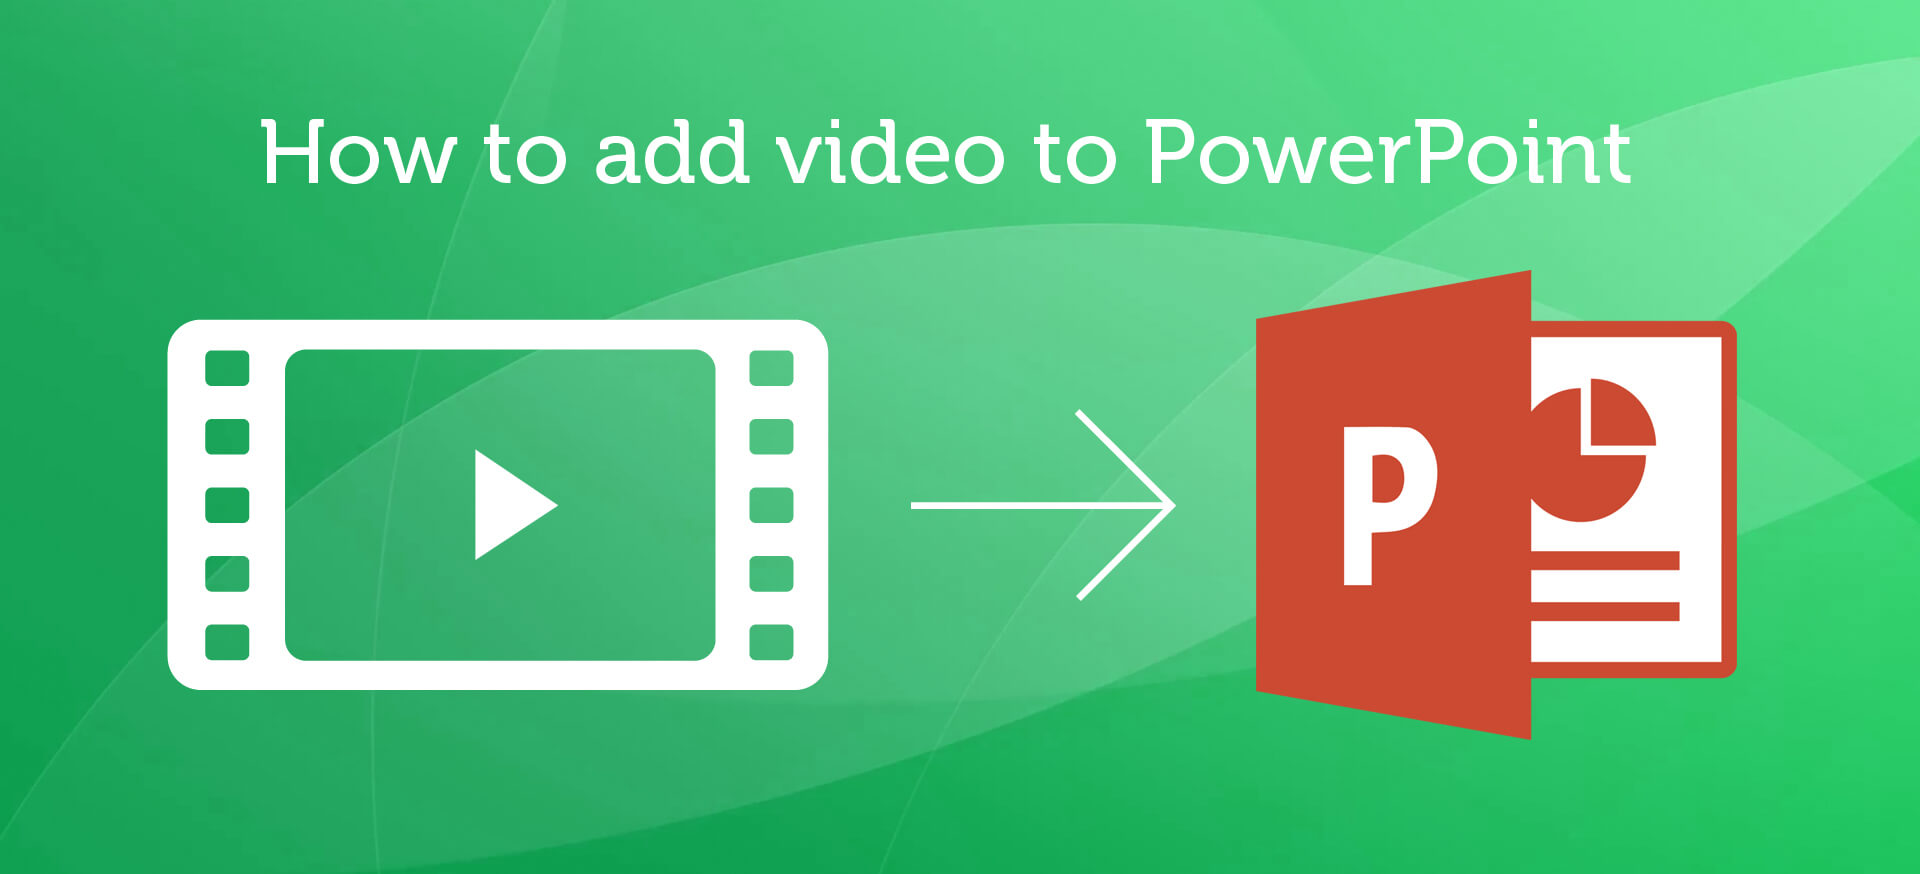 Adding Video to Powerpoint Title